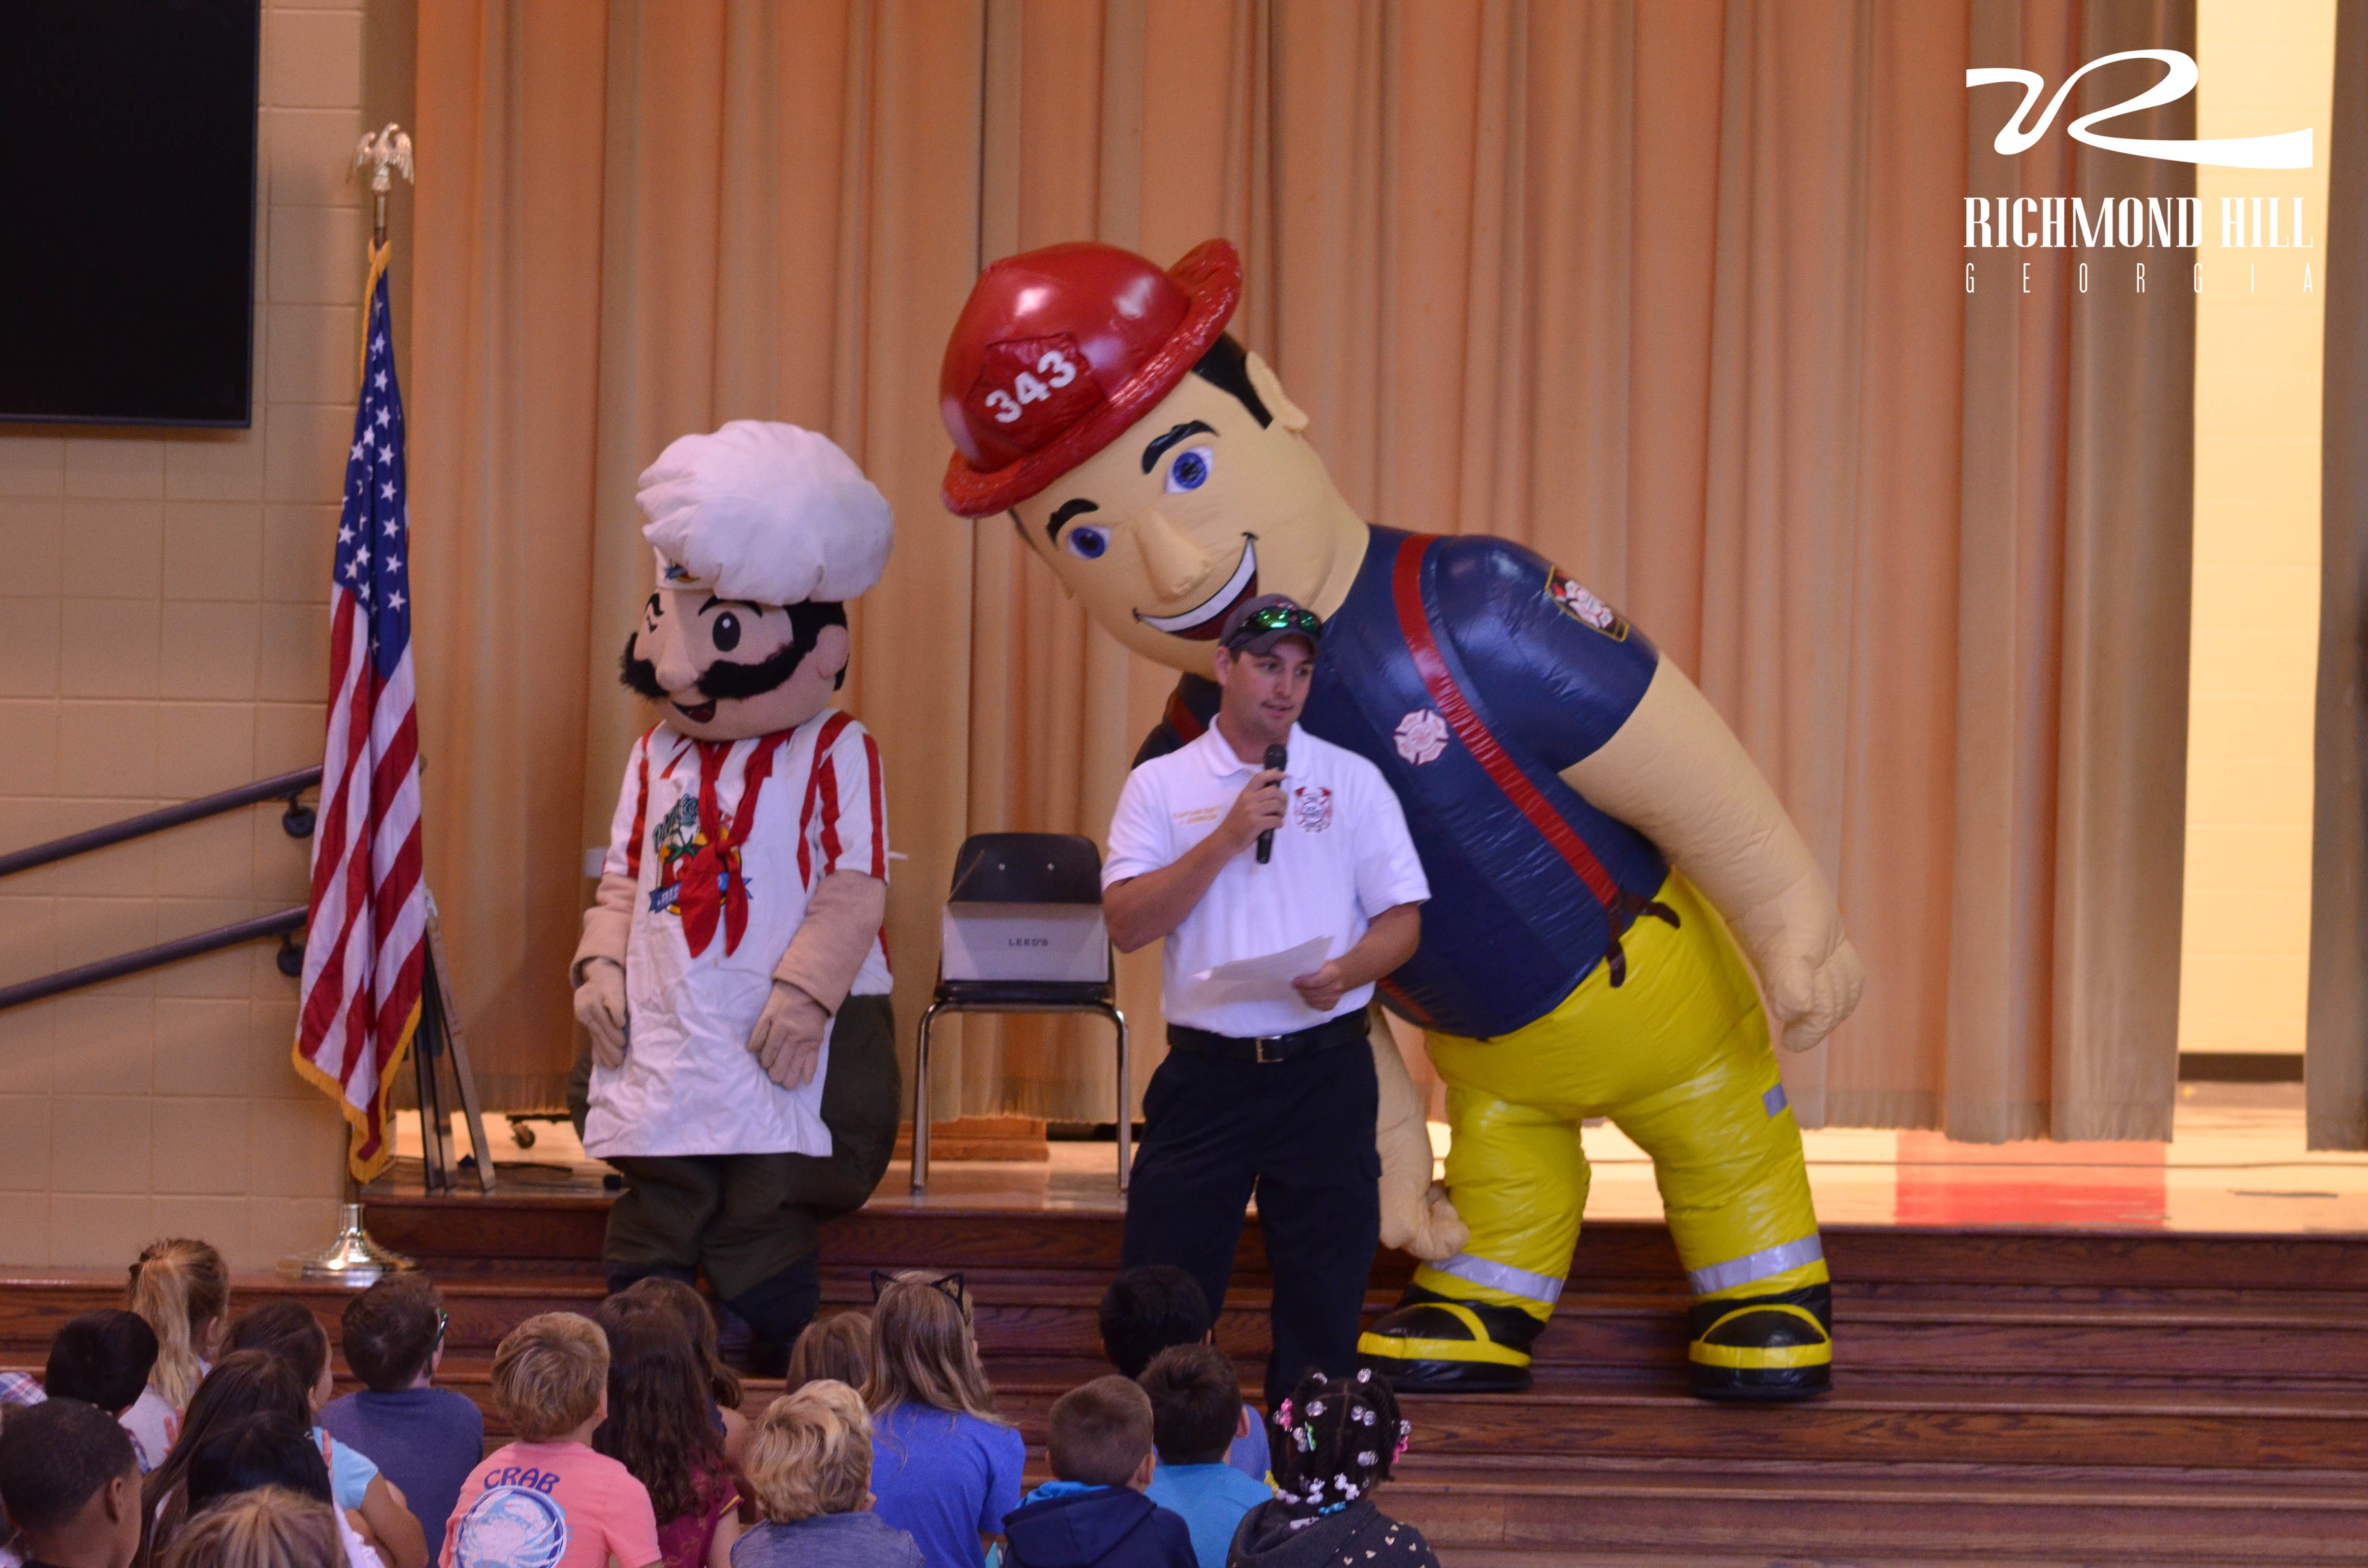 A man with a microphone stands next to a firefighter mascot and someone in a chef's suit